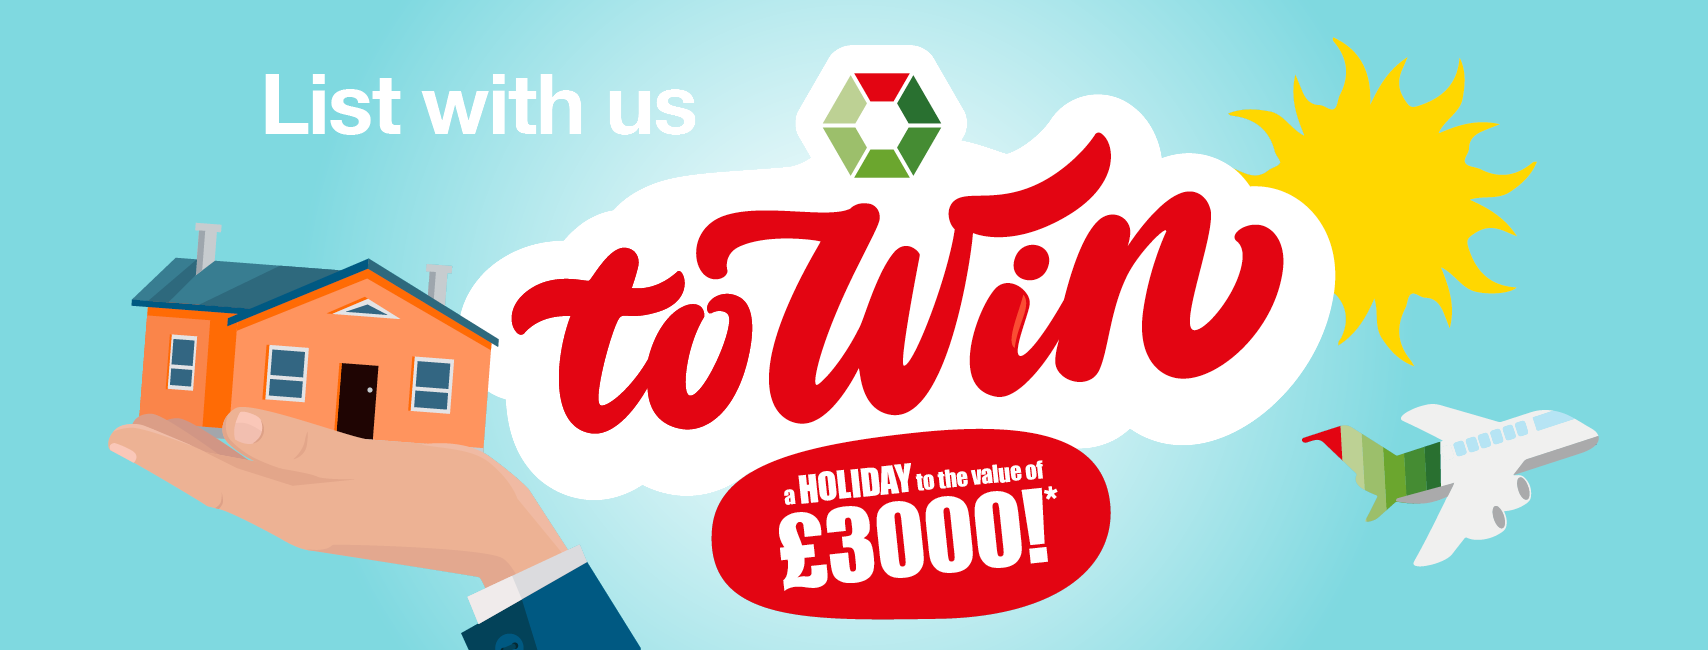 List your property with Swoffers for the chance to win £3000!